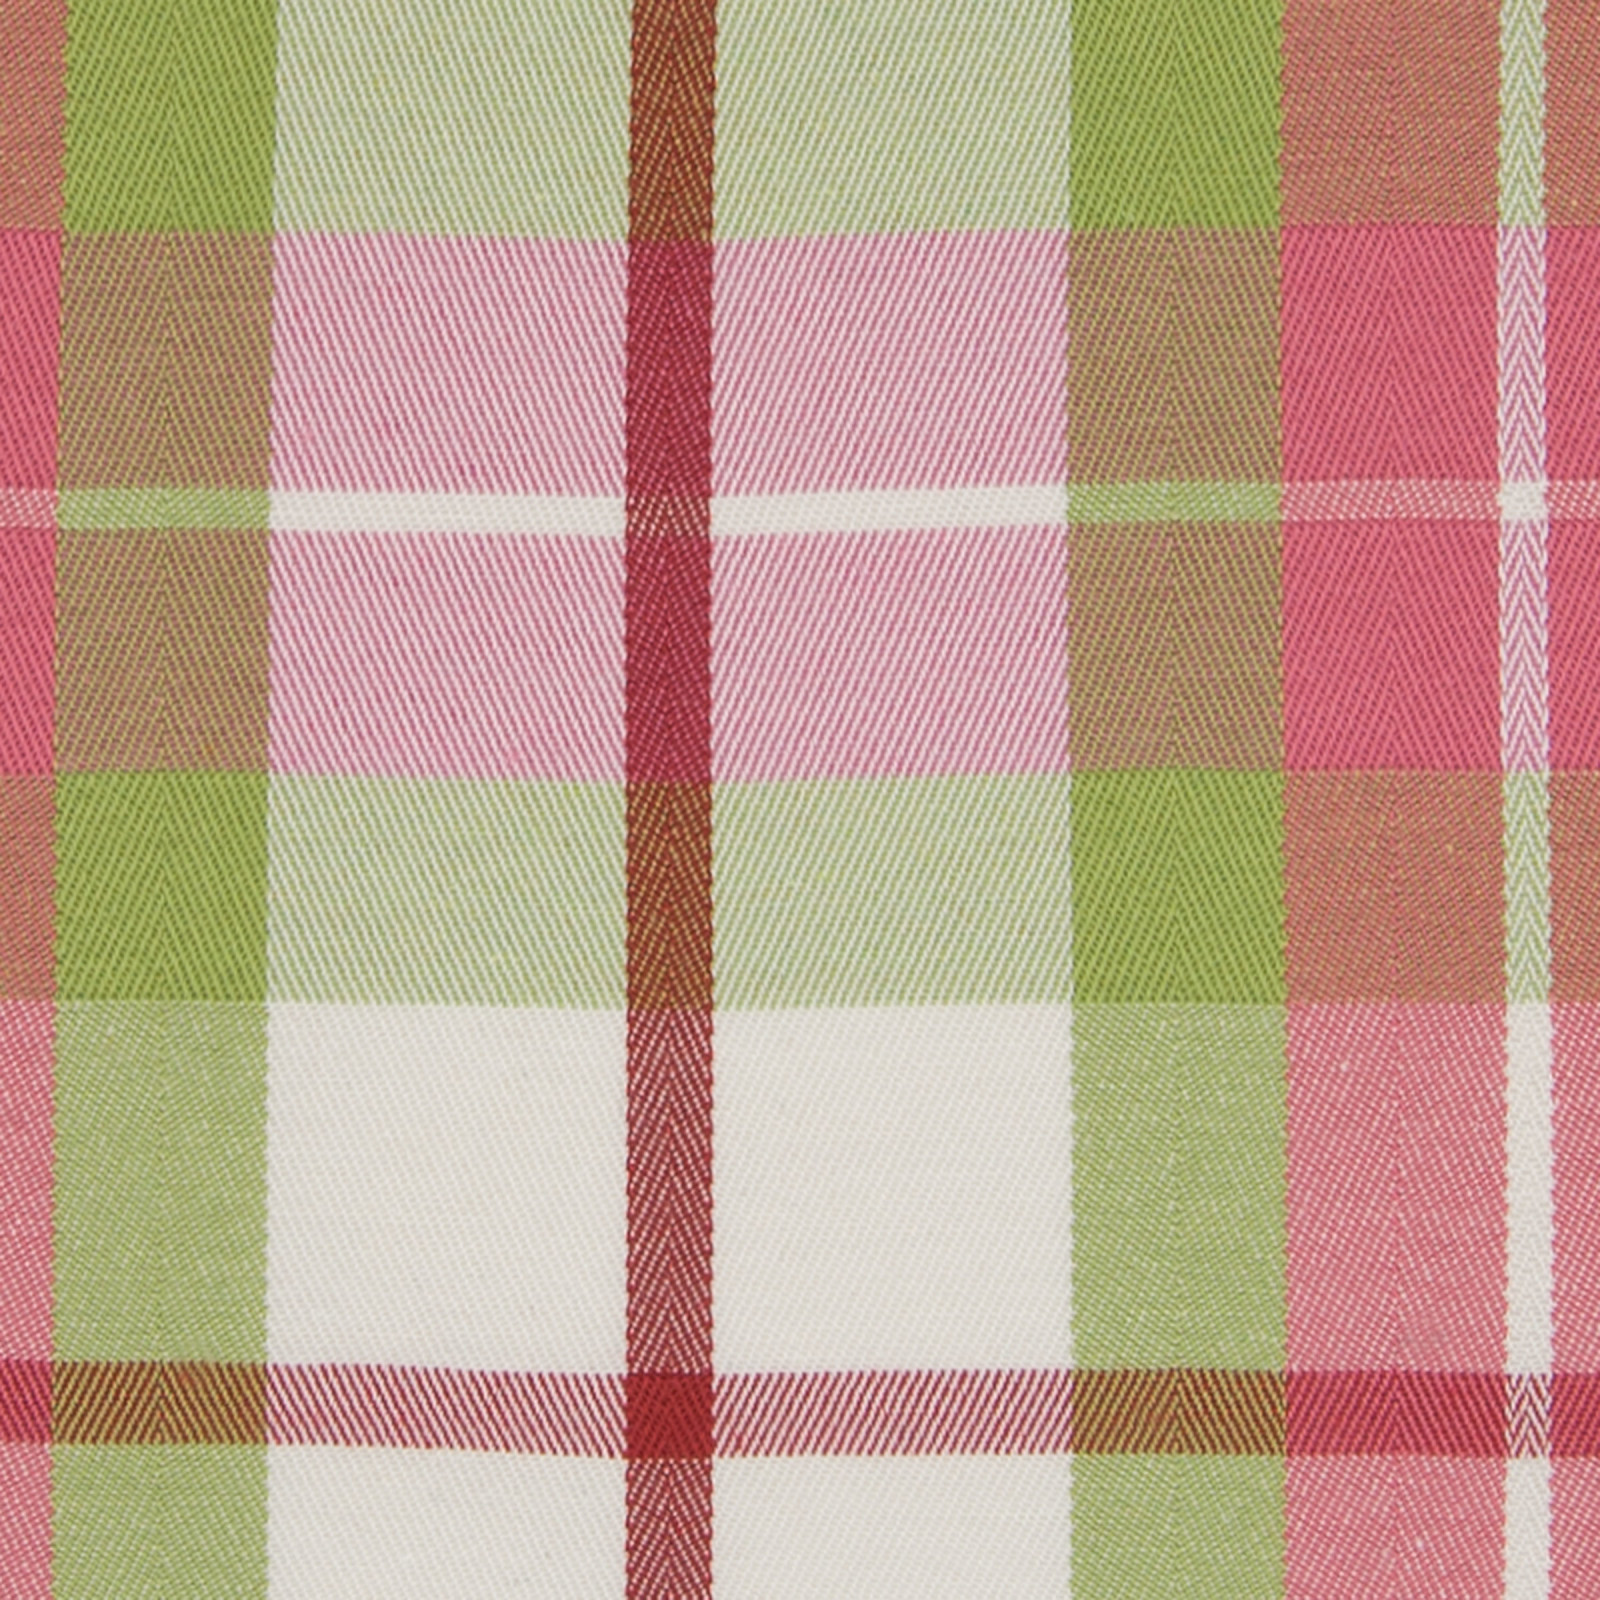 Melon Pink And Green Plaid Woven Upholstery Fabric